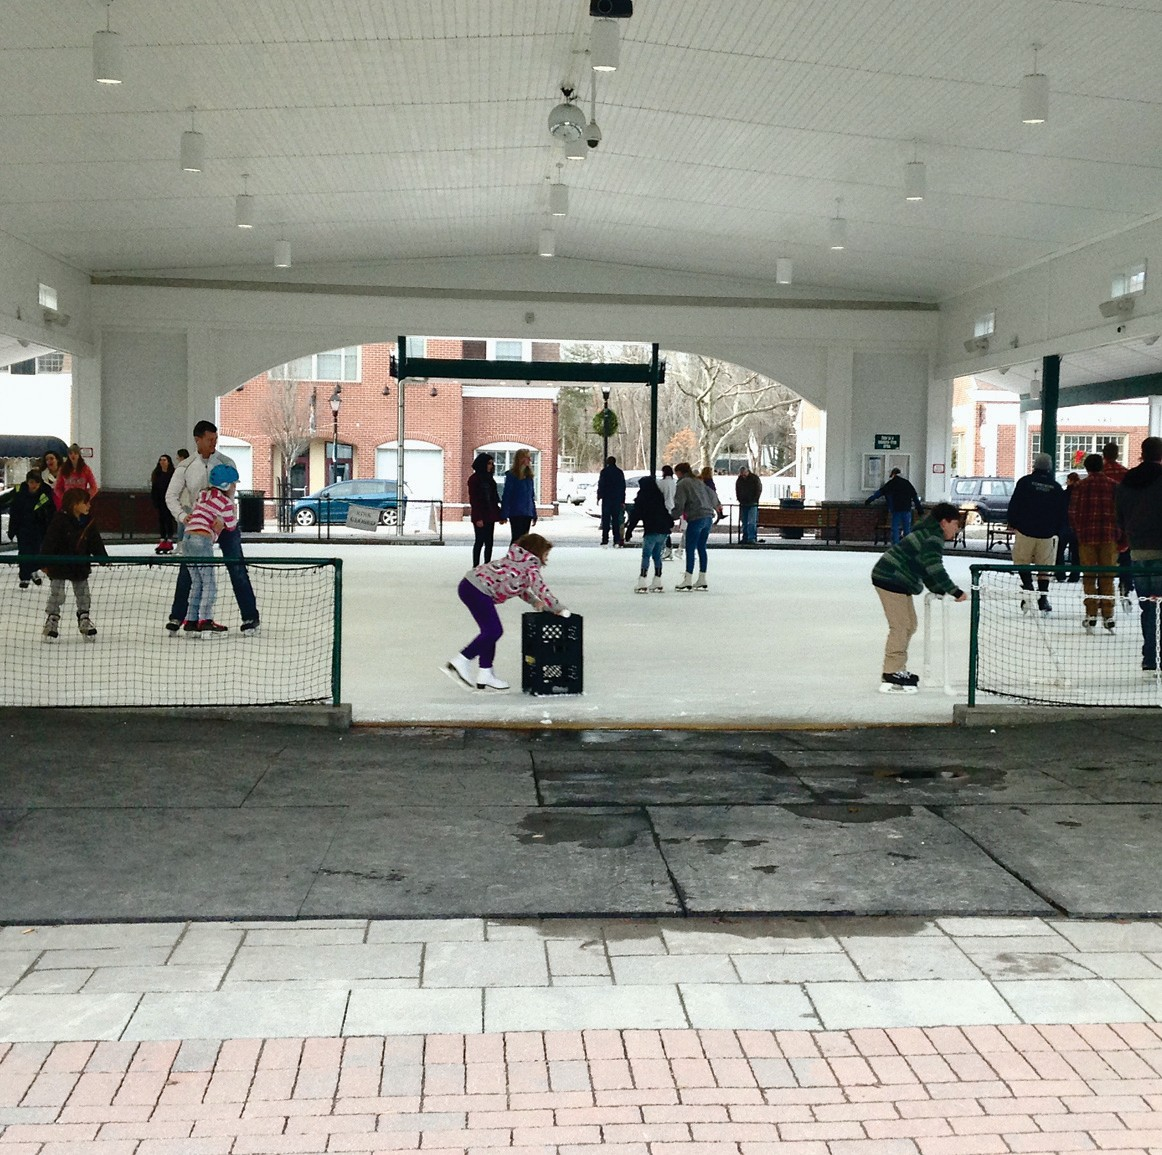 Pictured here is the Waterhouse Center skating pond in Kennebunk.